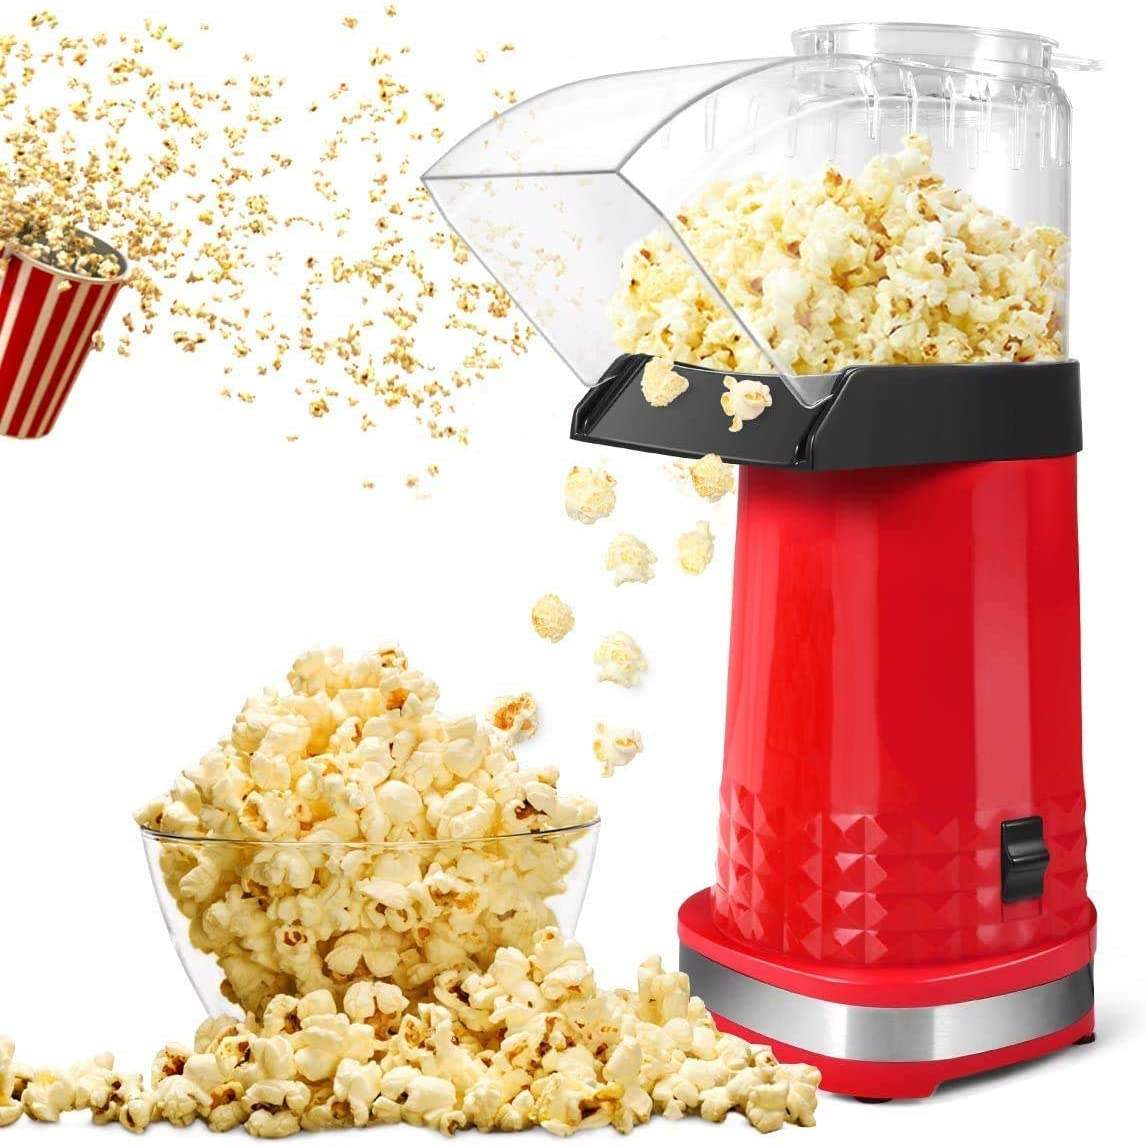 YiimDaifun Popcorn Maker, Home Electric Air Popcorn Maker Machine with ETL Certified, BPA Free, No Oil, DIY Flavors, Popcorn Popper for Home Movie/Party